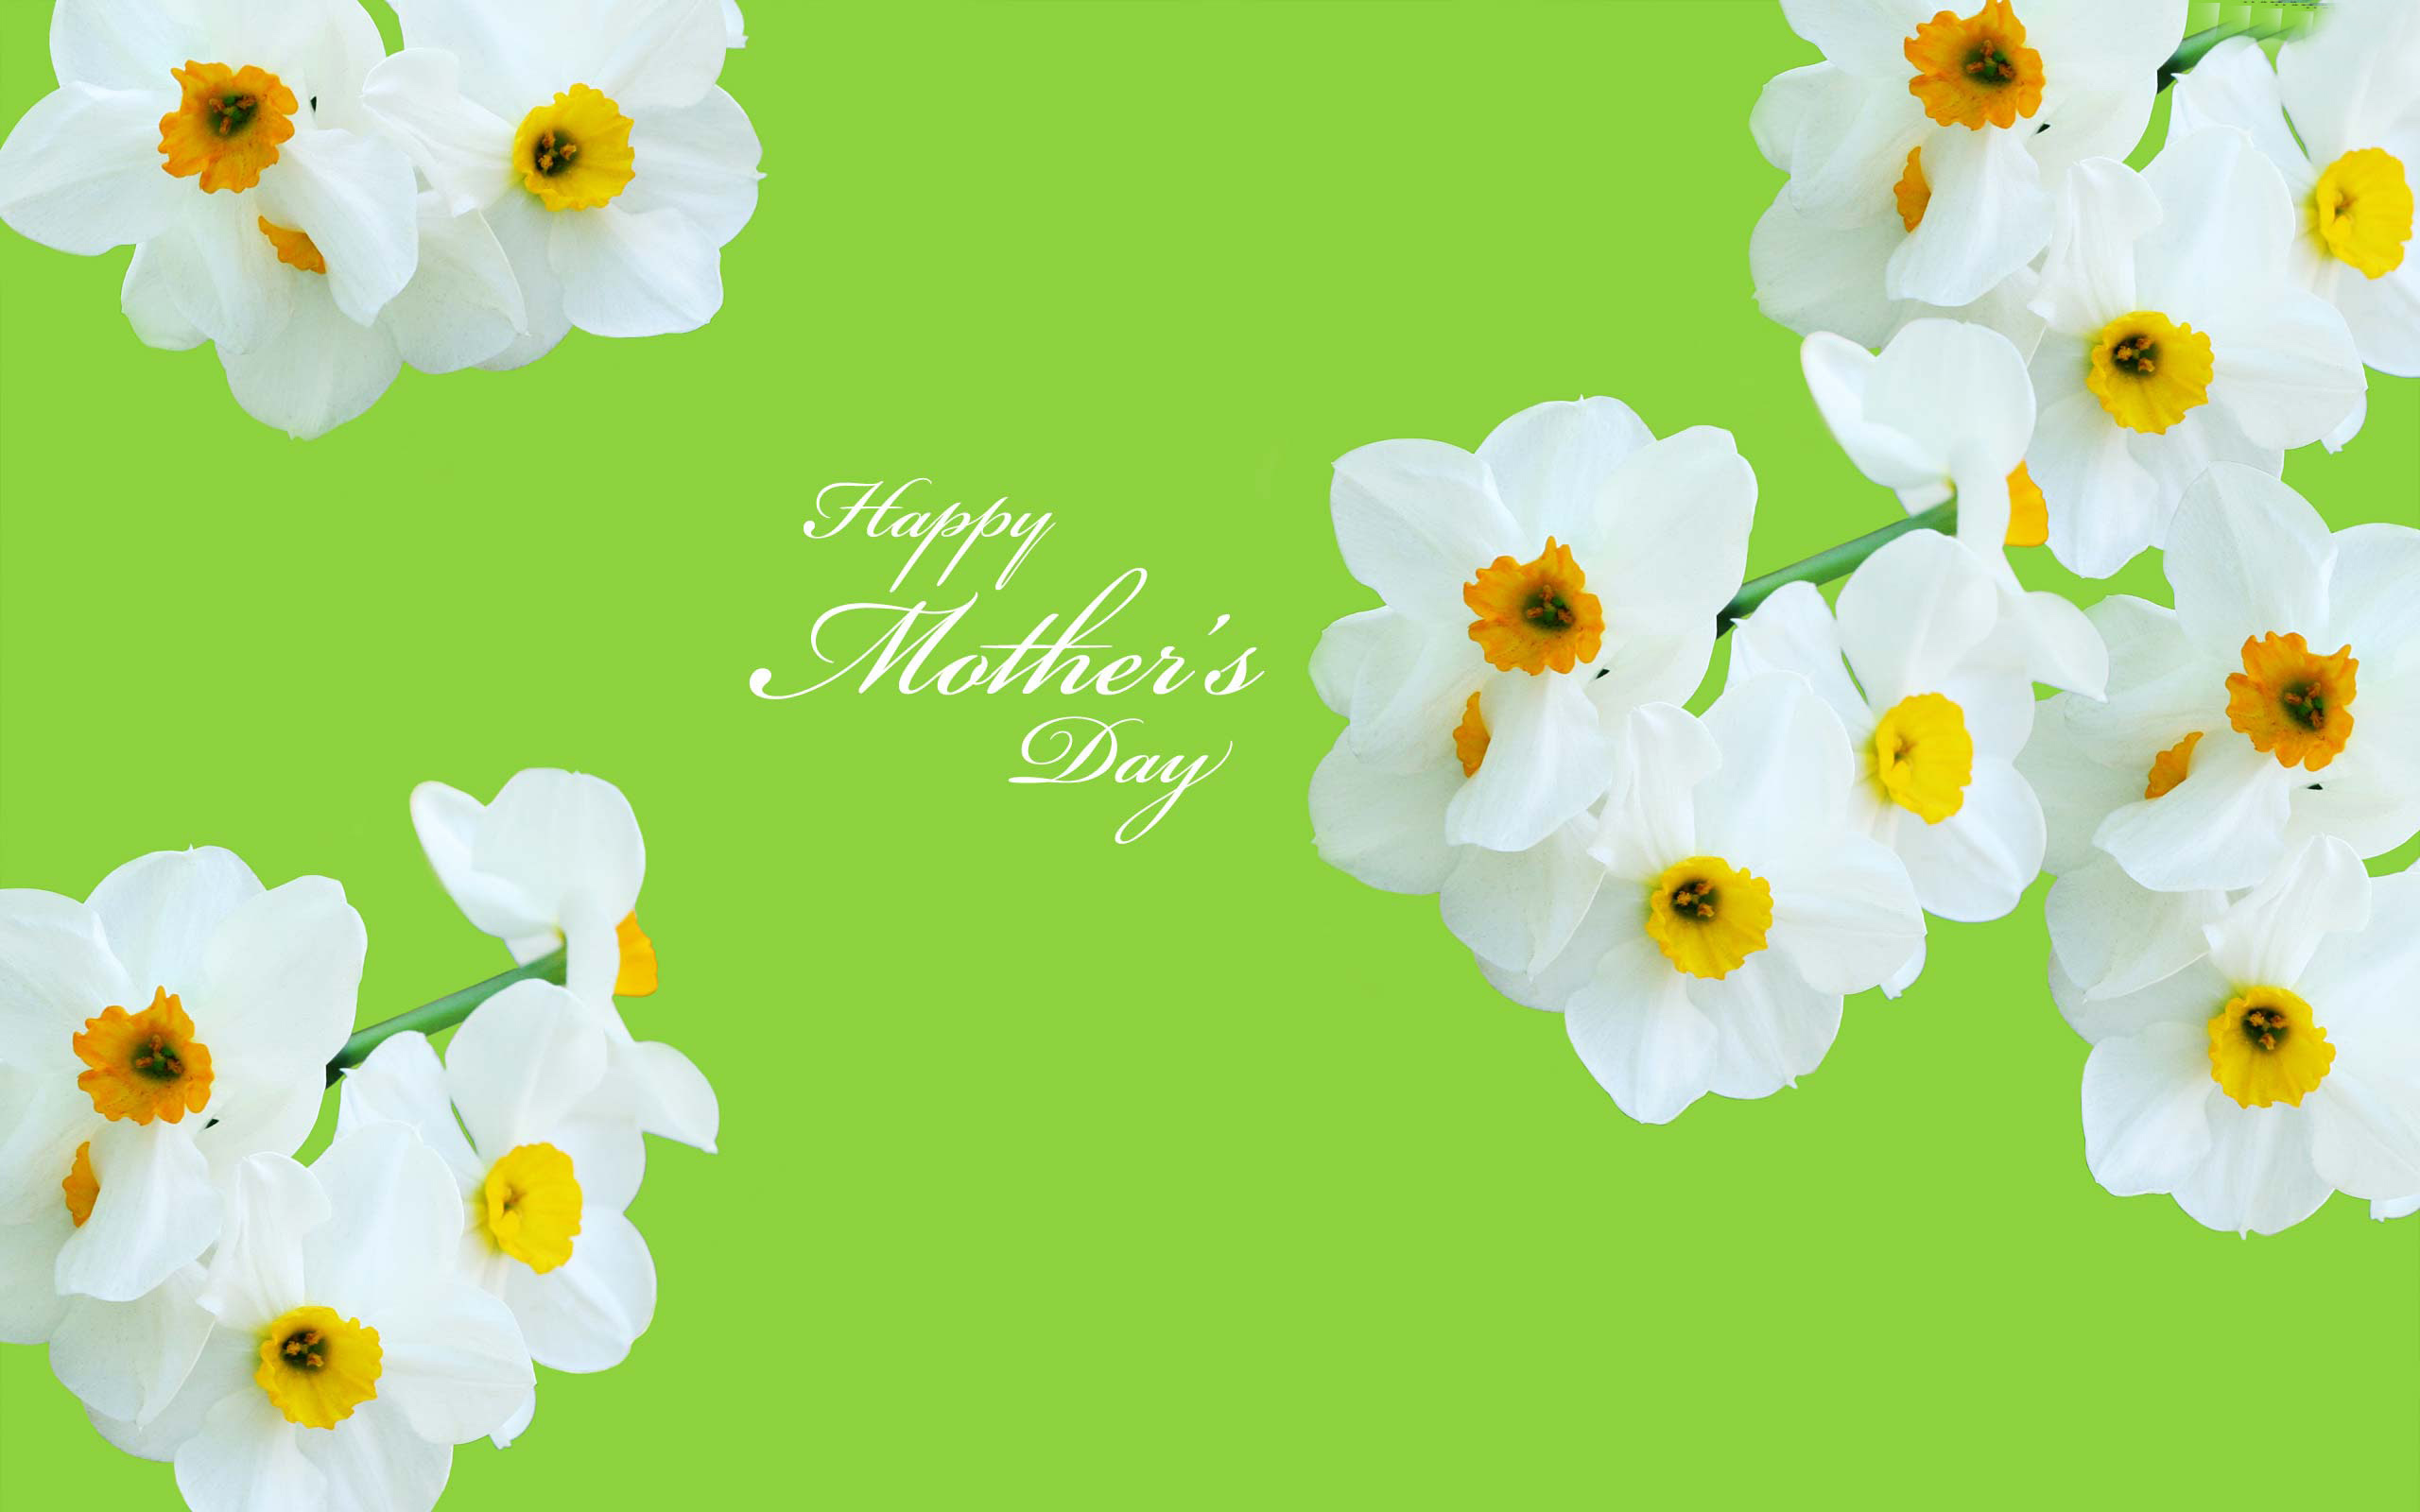 Happy Mothers Day Hd Images Wallpapers Free Download 1